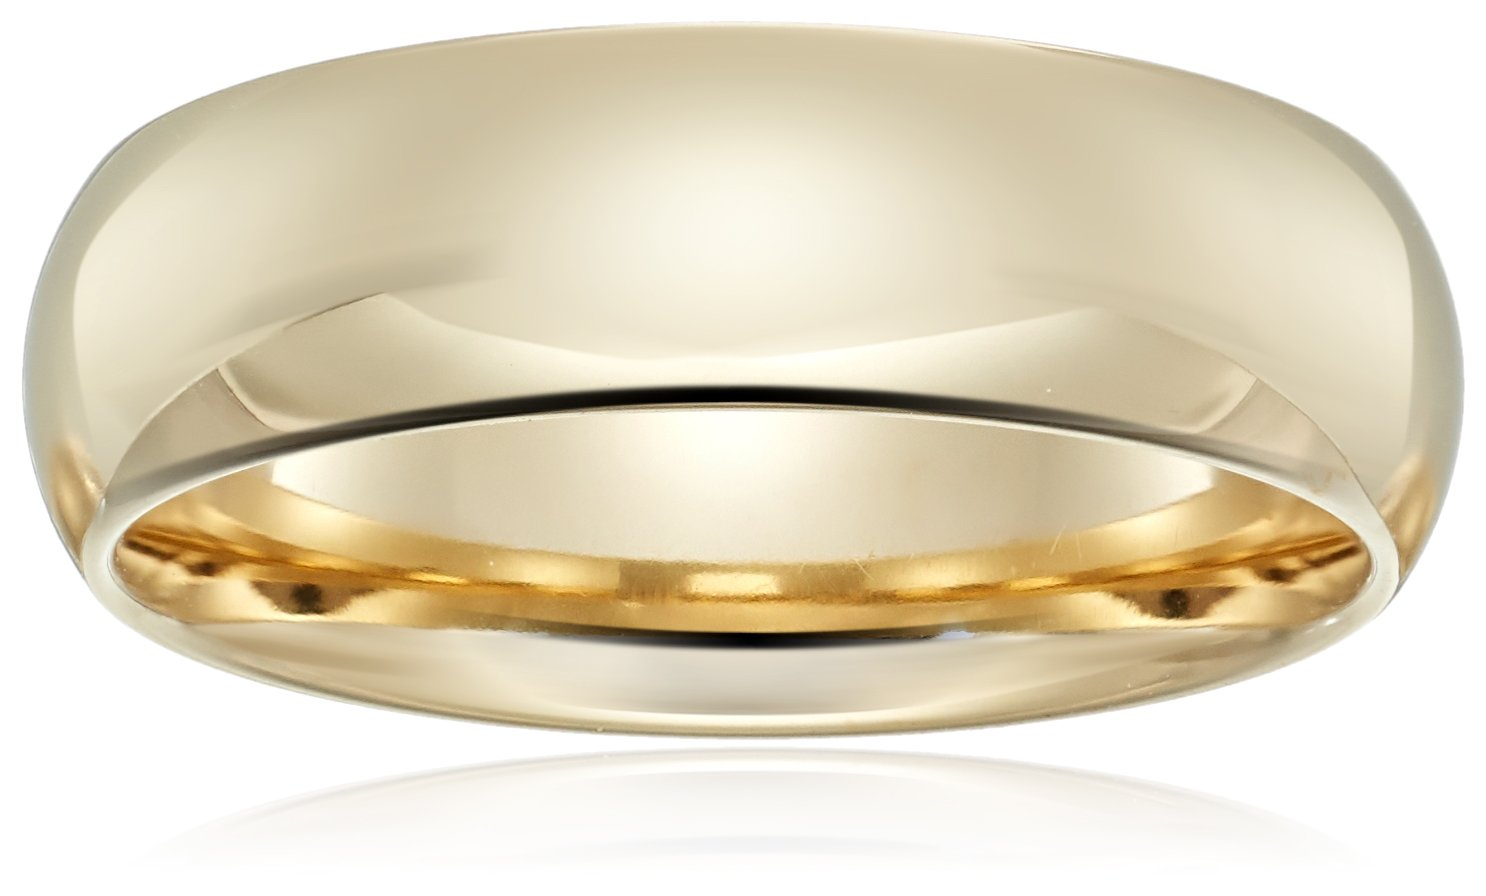 Standard Comfort-Fit 14K Yellow Gold Band, 6mm, Size 8